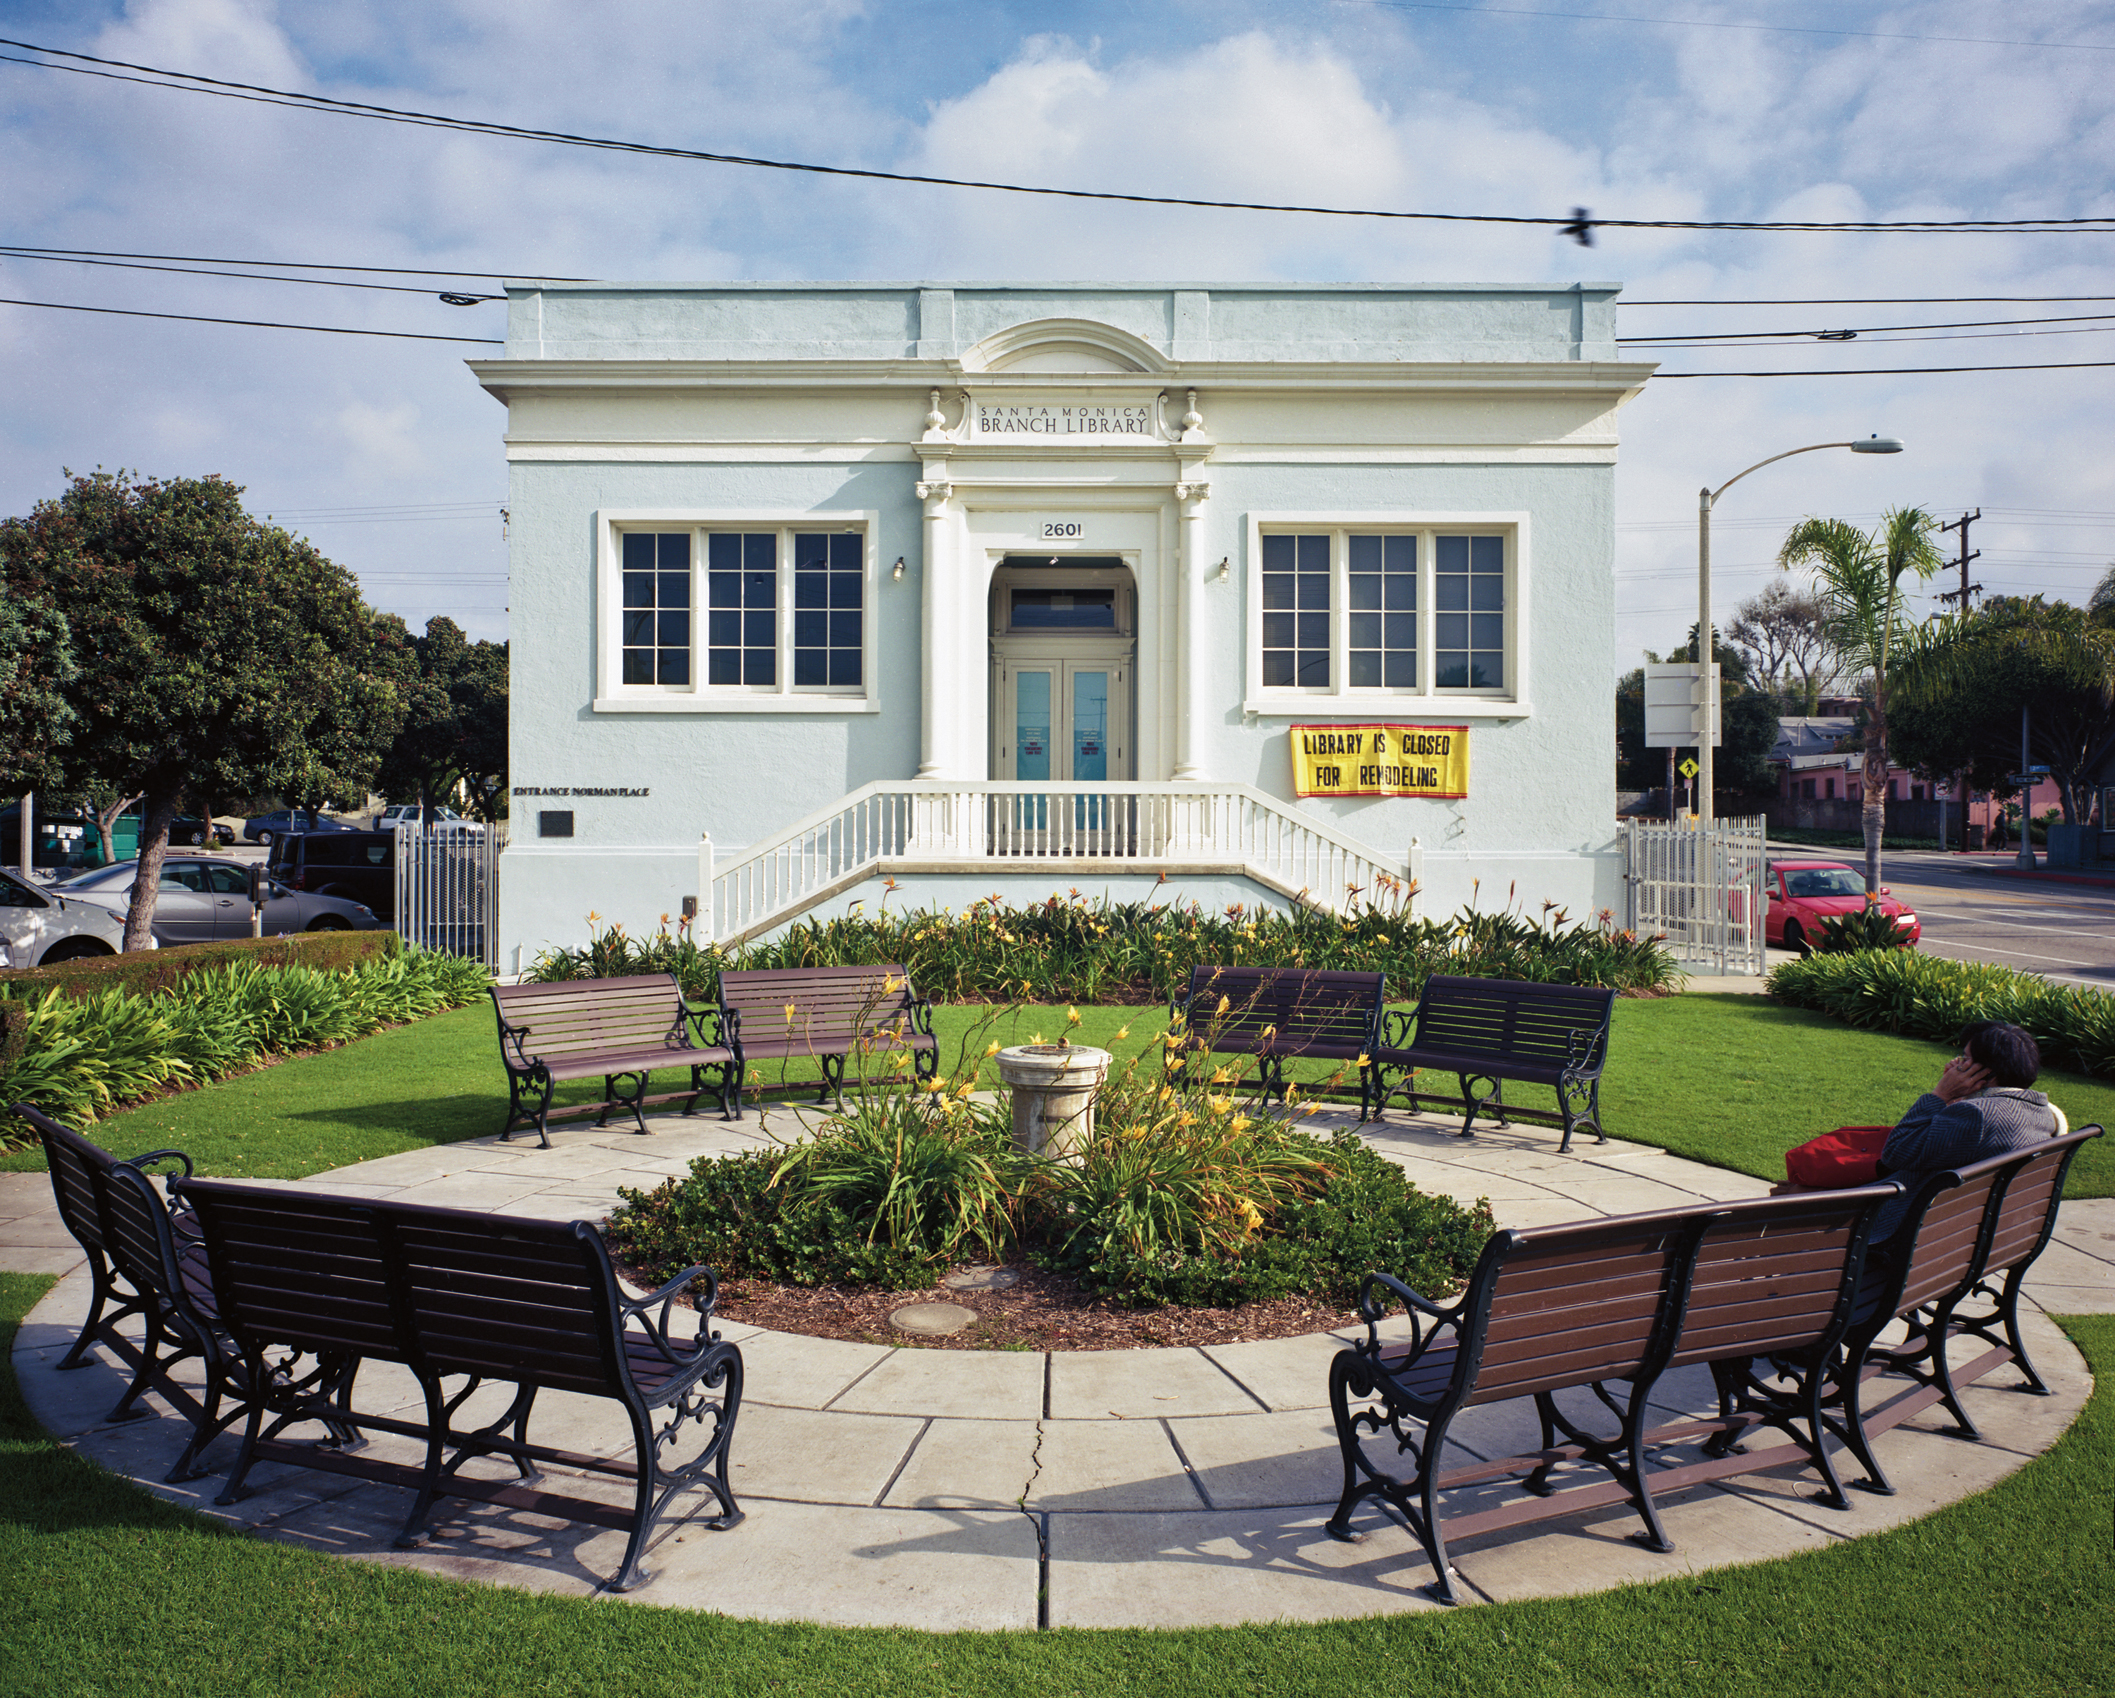 Ocean Park Branch Library in Santa Monica, Calif. (2011)